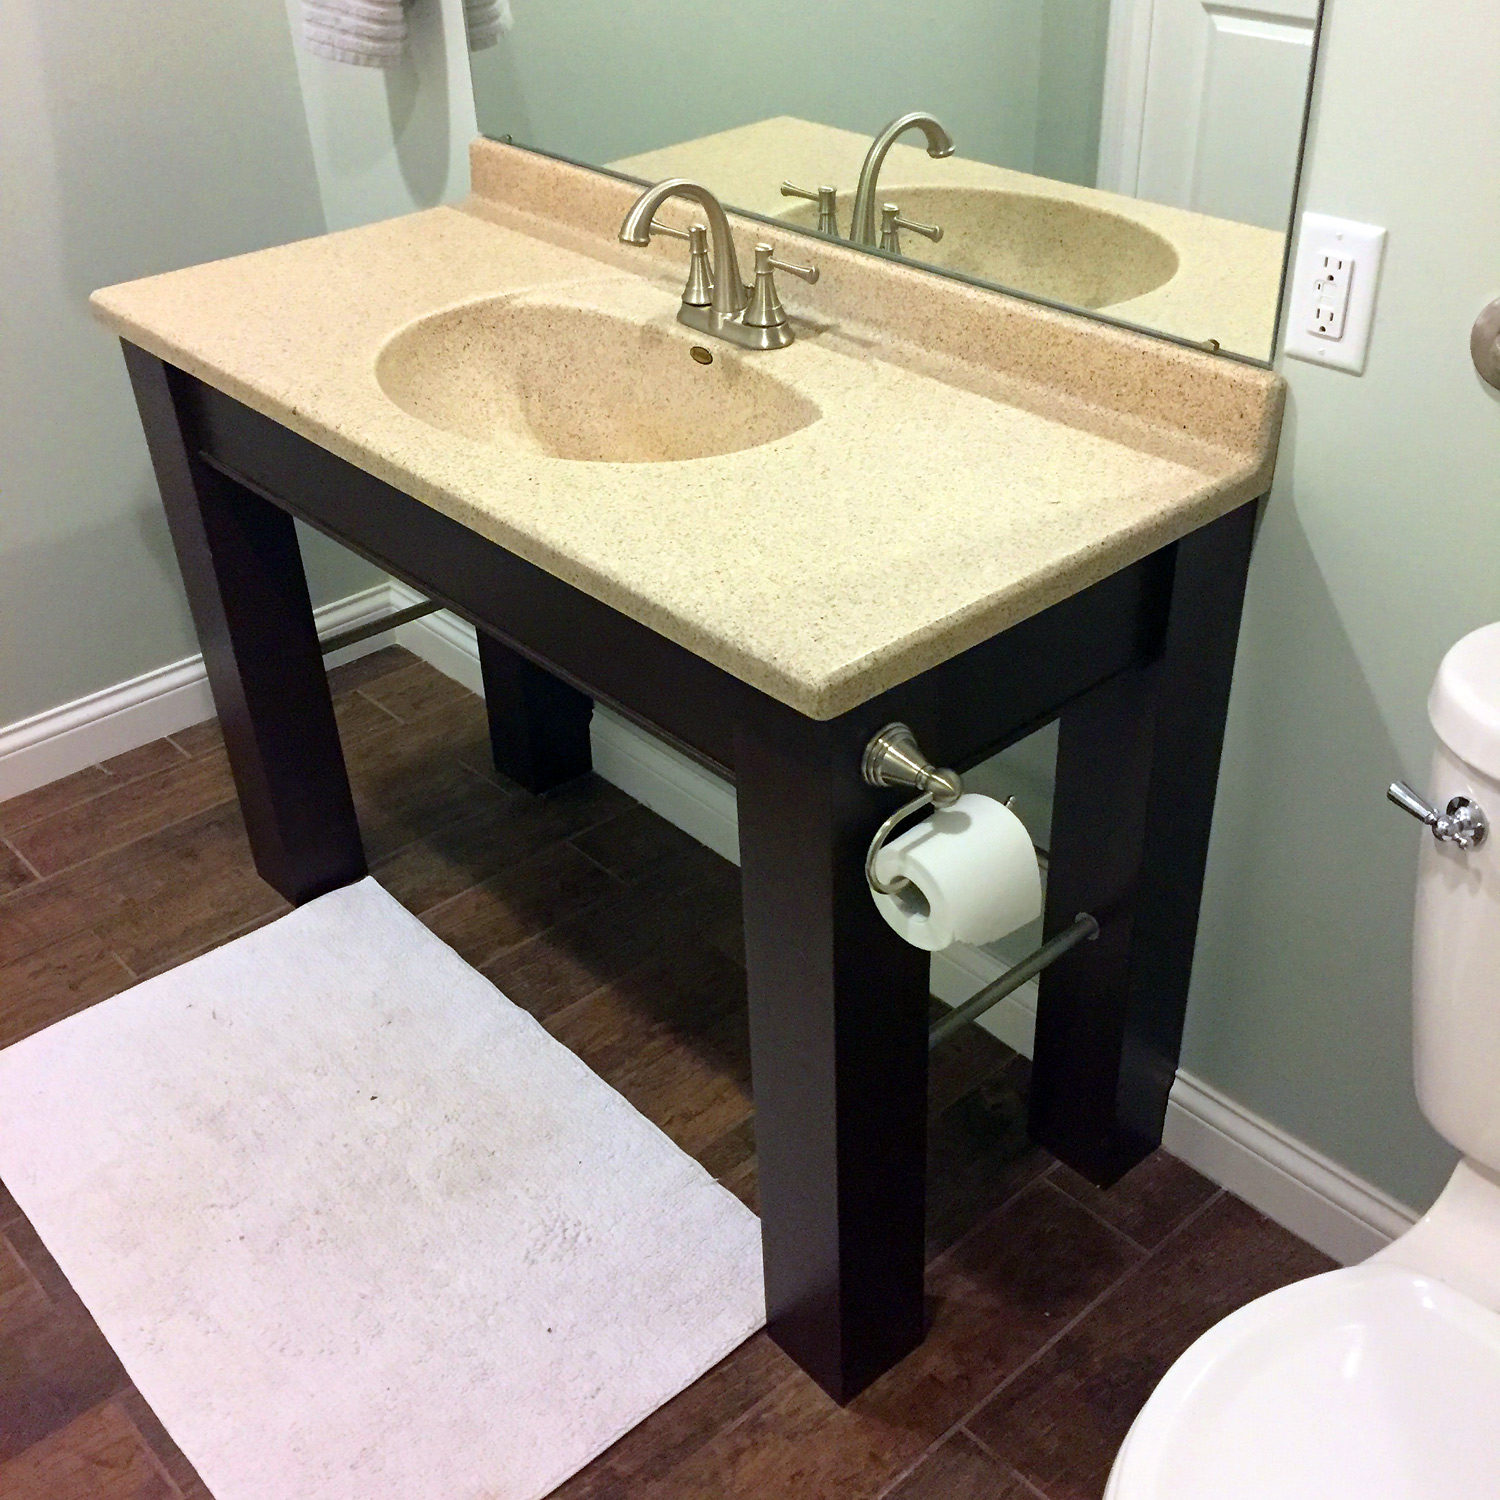 Make an ada compliant vanity for your bathroom christian moist for Wheelchair accessible sink bathroom